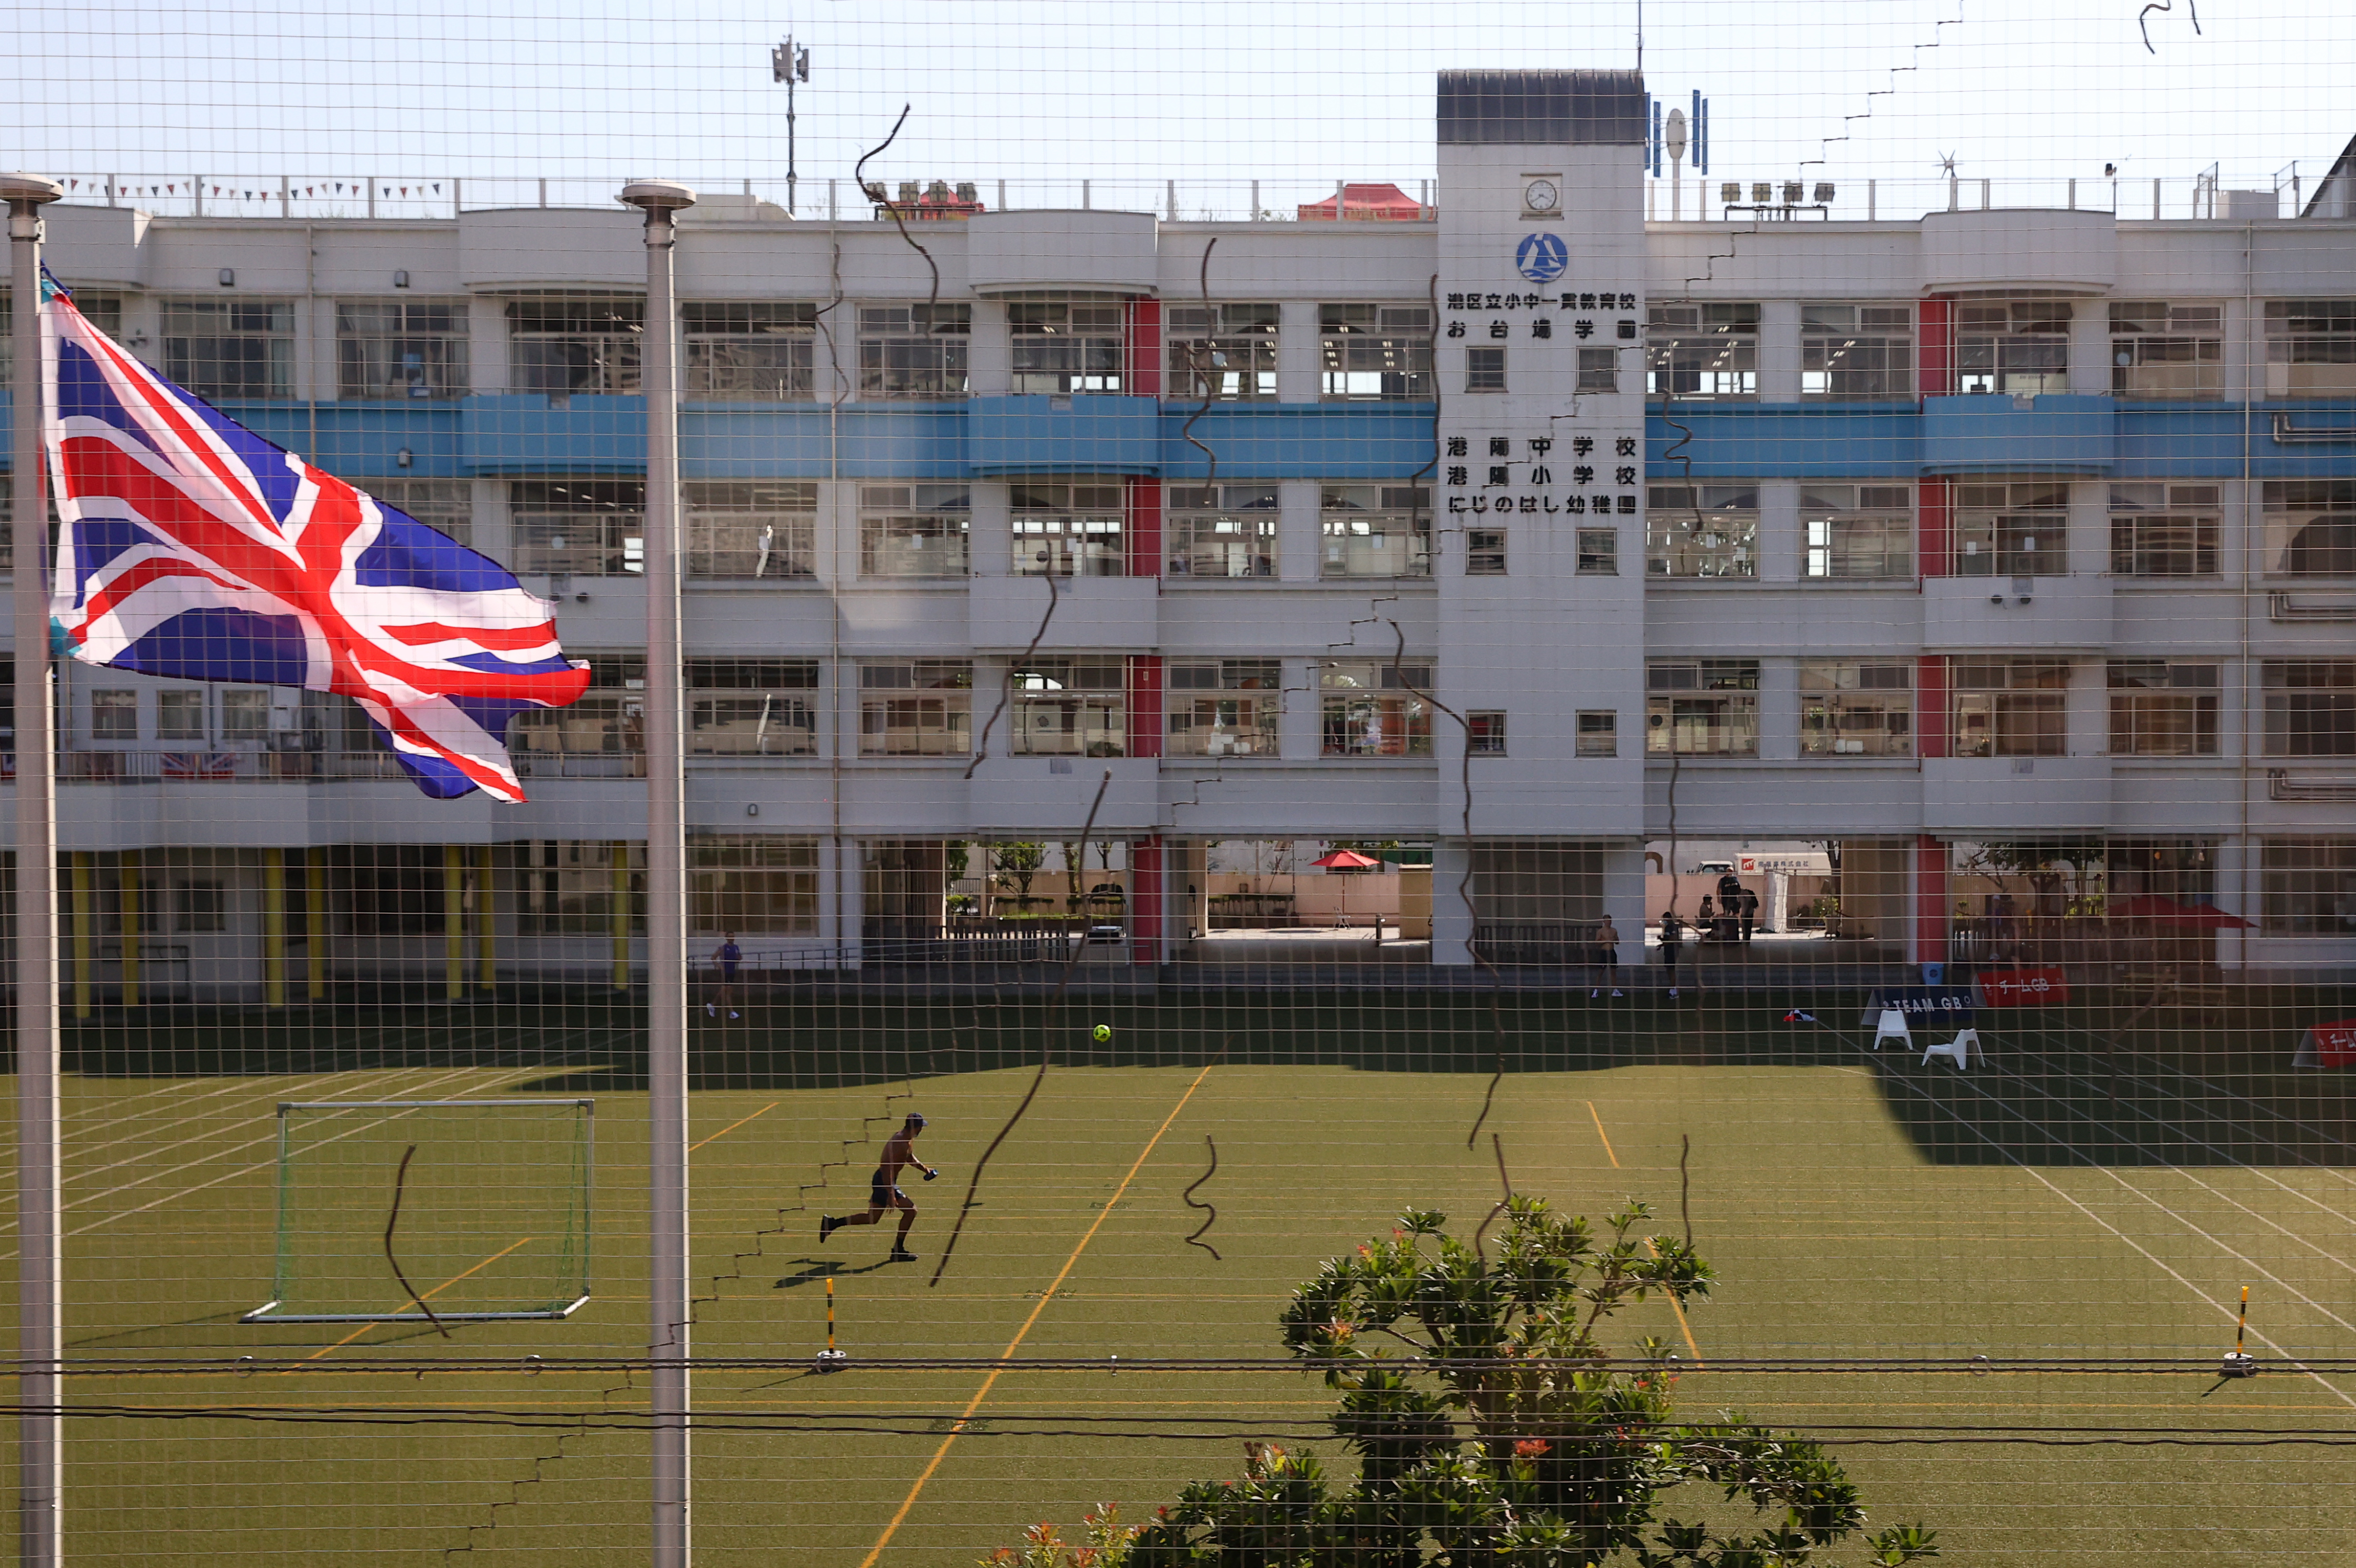 Tokyo 2020 Olympics Preview - Tokyo, Japan - July 22, 2021 General view of the Great Britain flag and Team GB signs at a training centre REUTERS/Thomas Peter